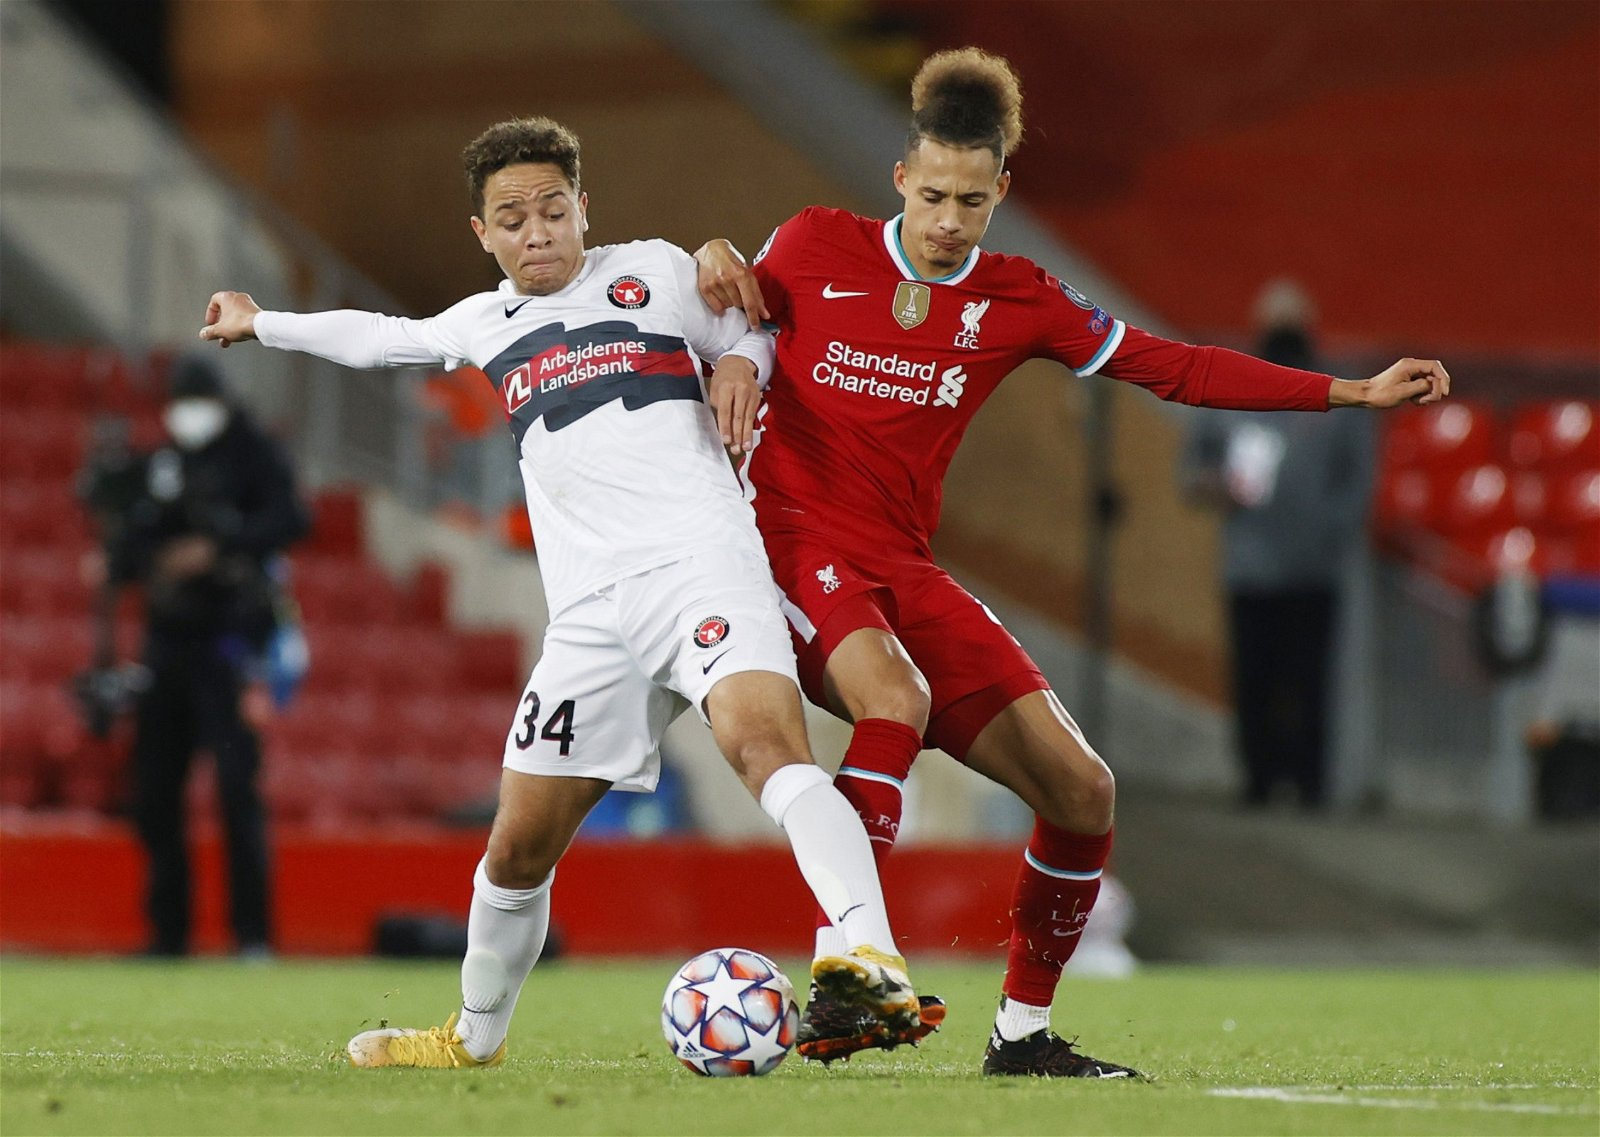 rhys-williams-for-liverpool-battles-for-the-ball